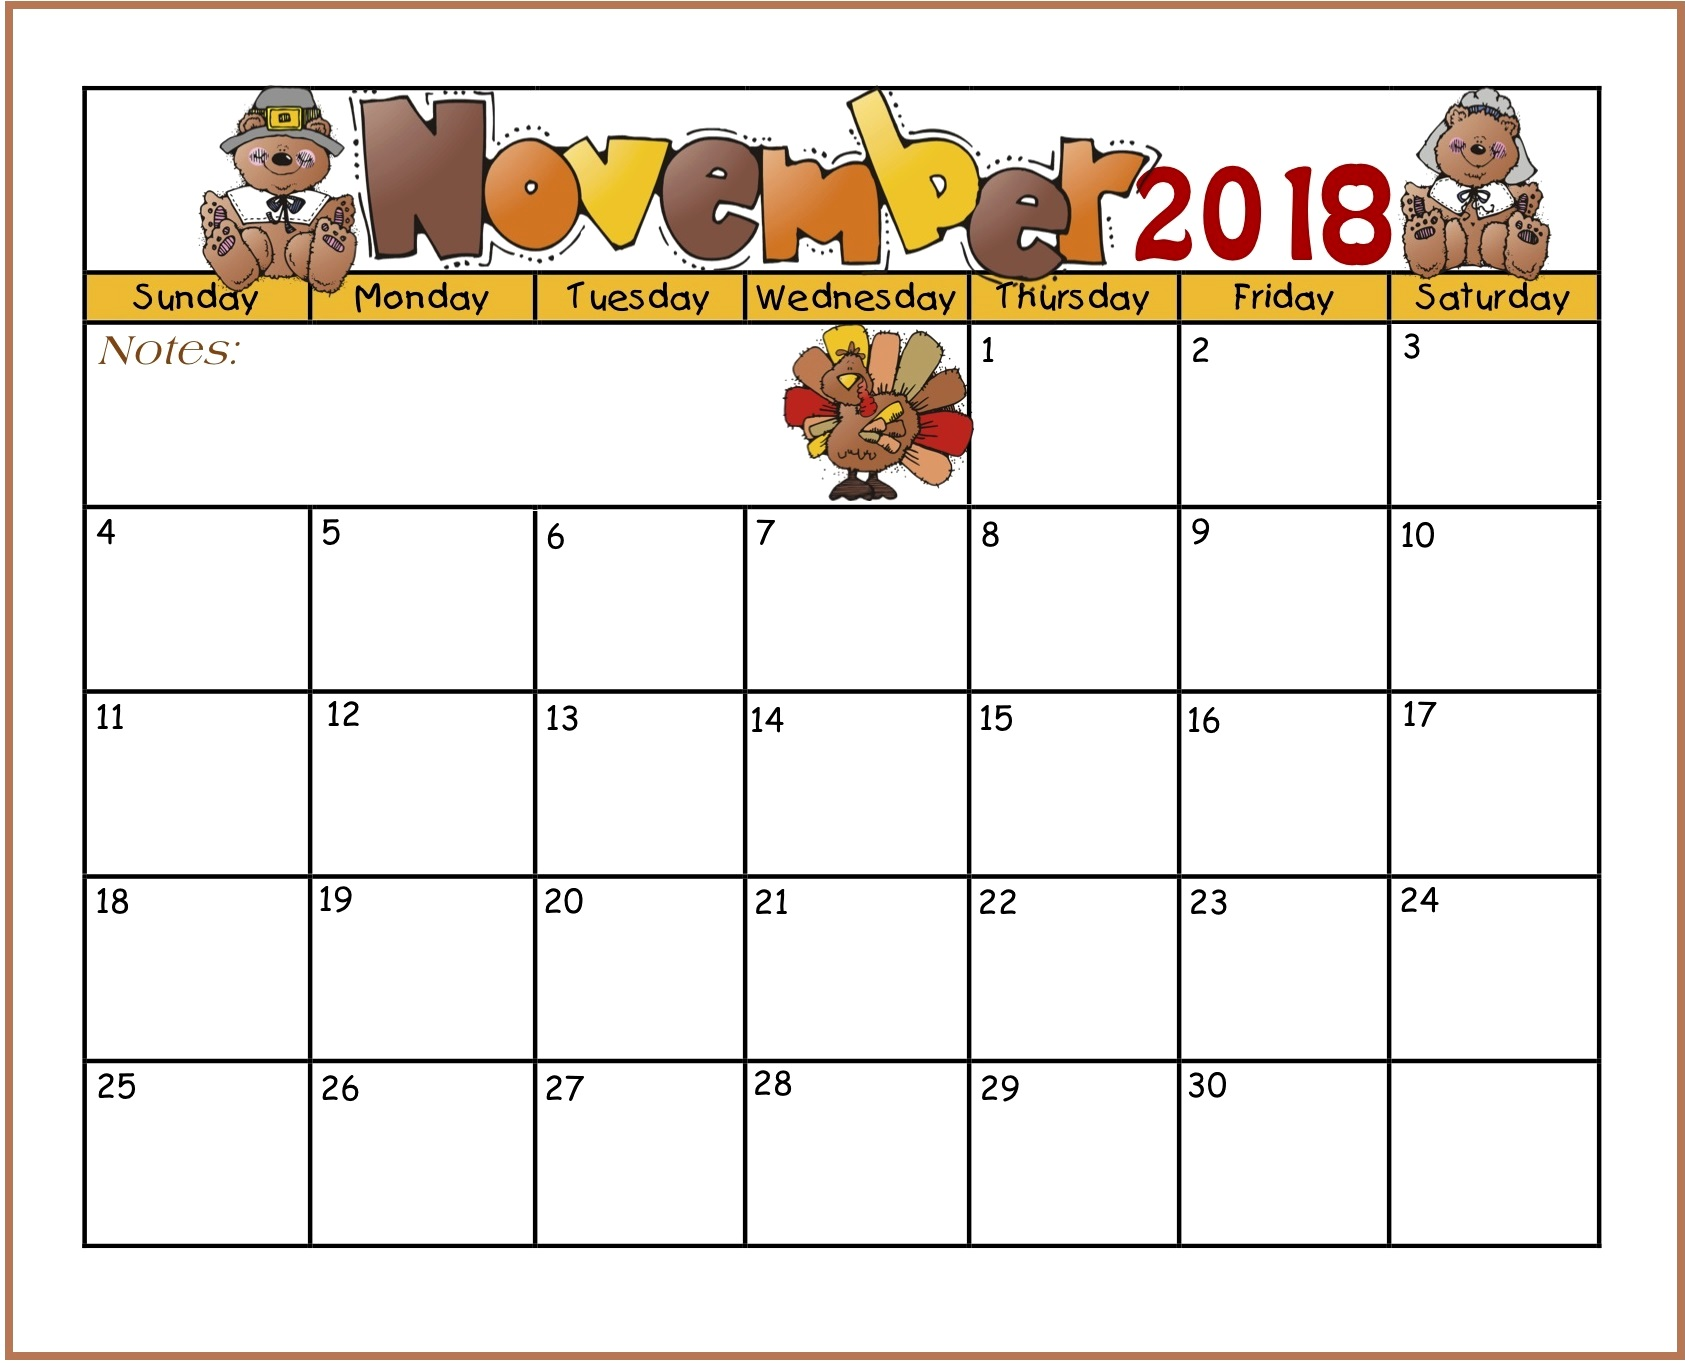 Cute November Calendar 2018 for Kids